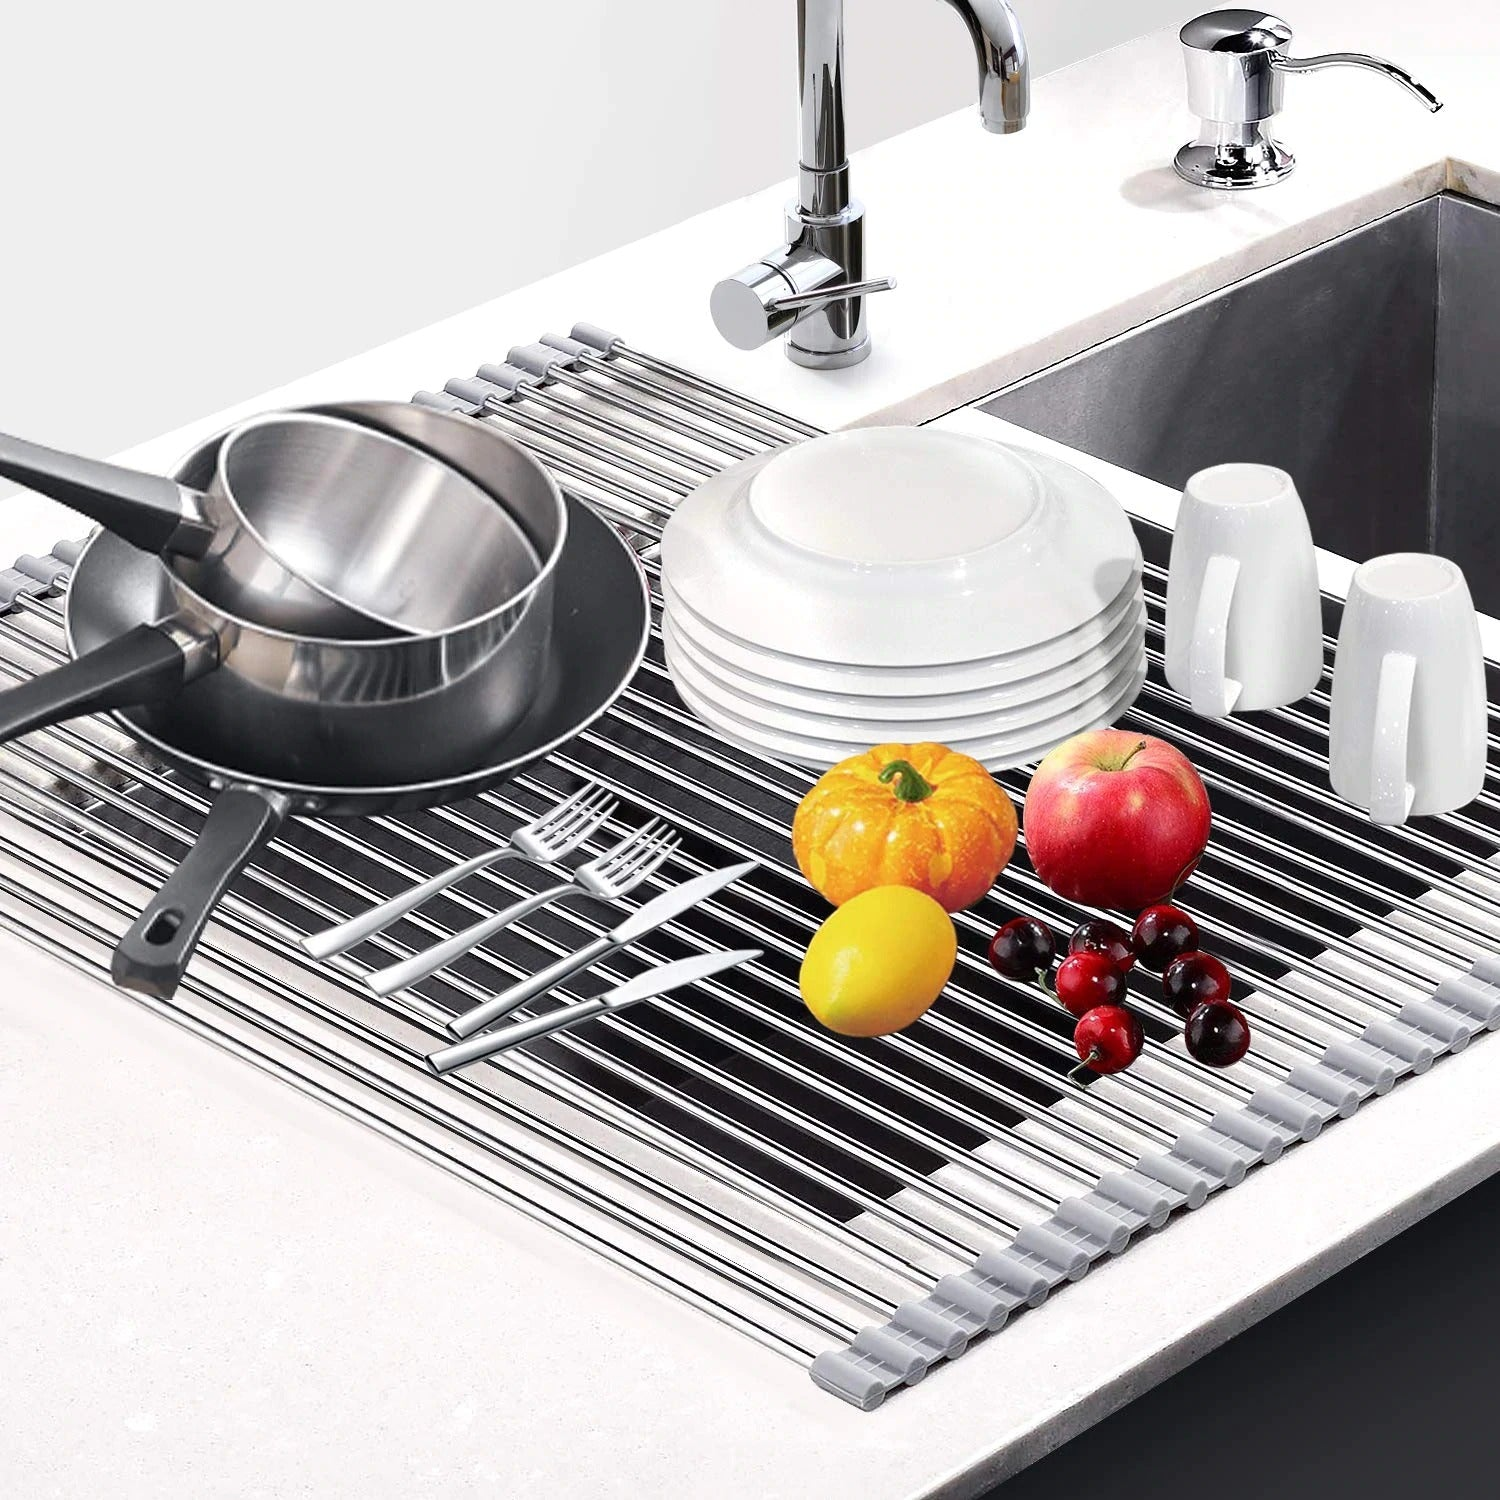 Roll-Up Dish Drying Rack-Over the sink